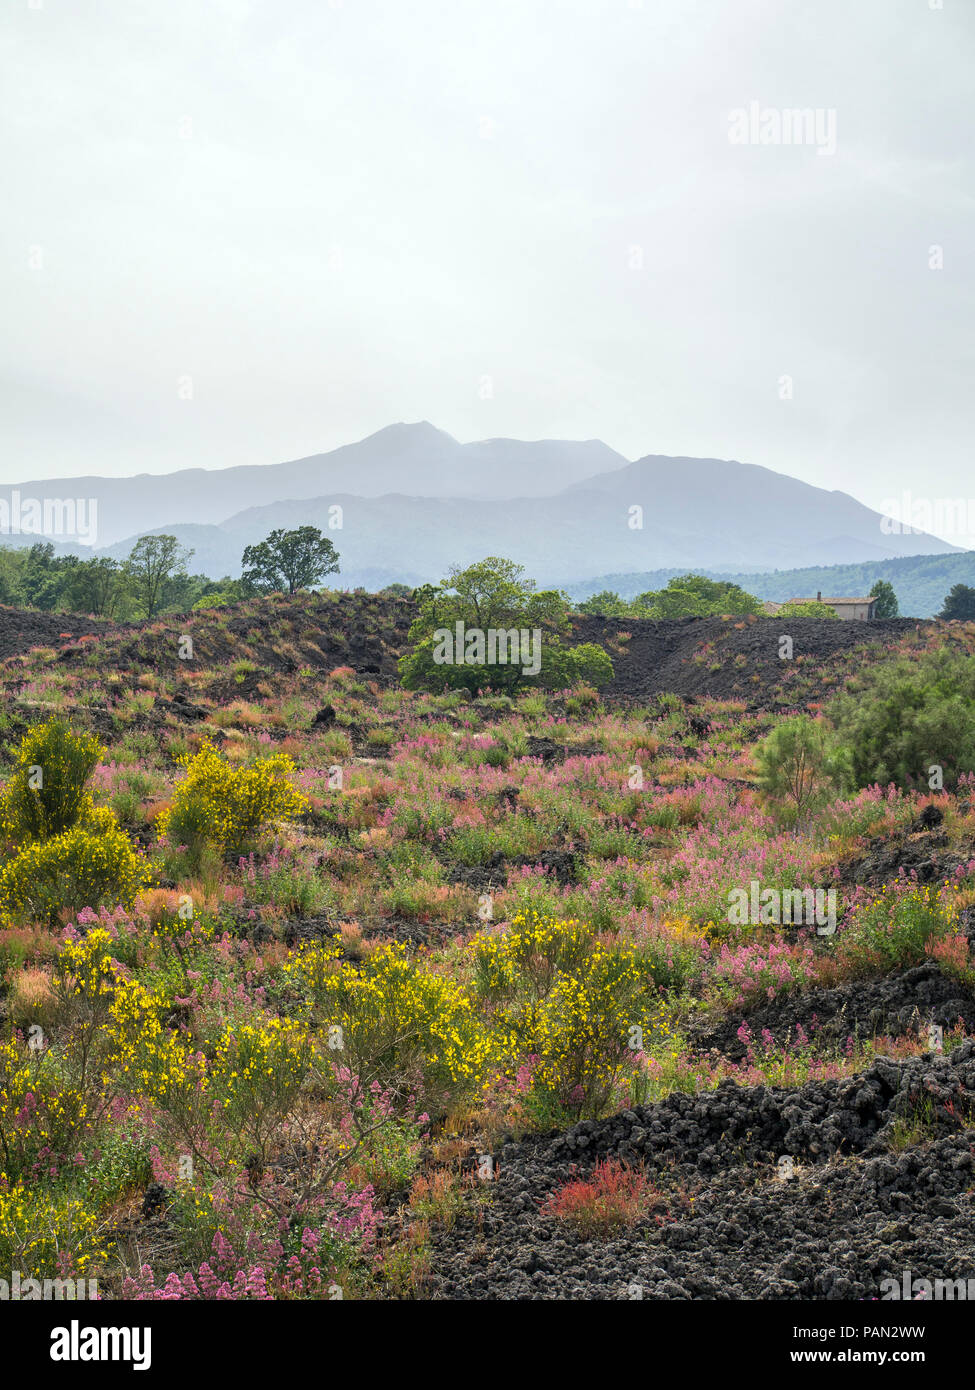 Wild flowers growing out of hardened lava on the north side of Mount Etna, with the volcano in the background, Sicily. - Stock Image